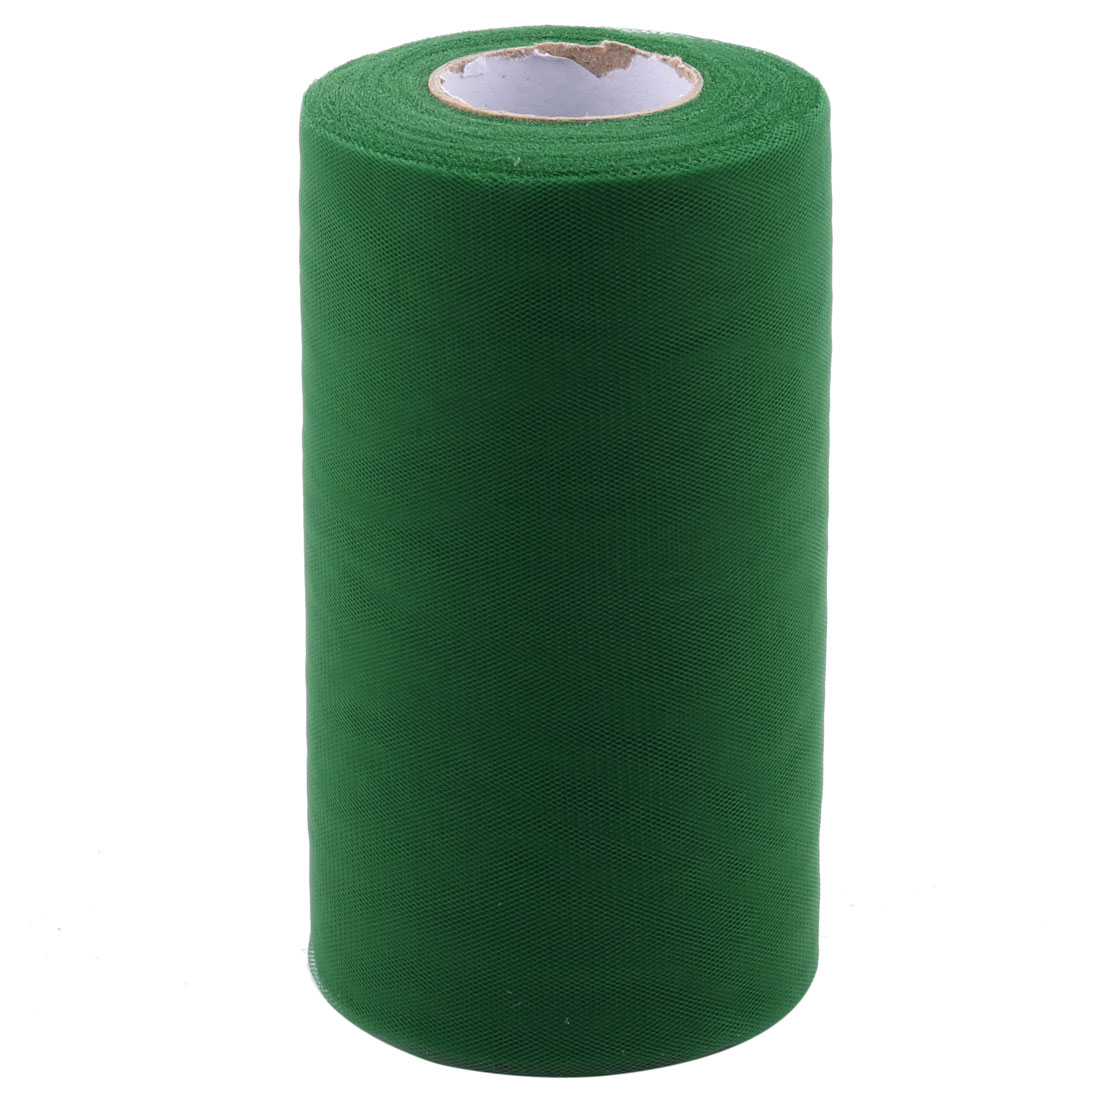 Party Gift Wrap Packing DIY Craft Tulle Spool Roll Dark Green 6 Inch x 50 Yards